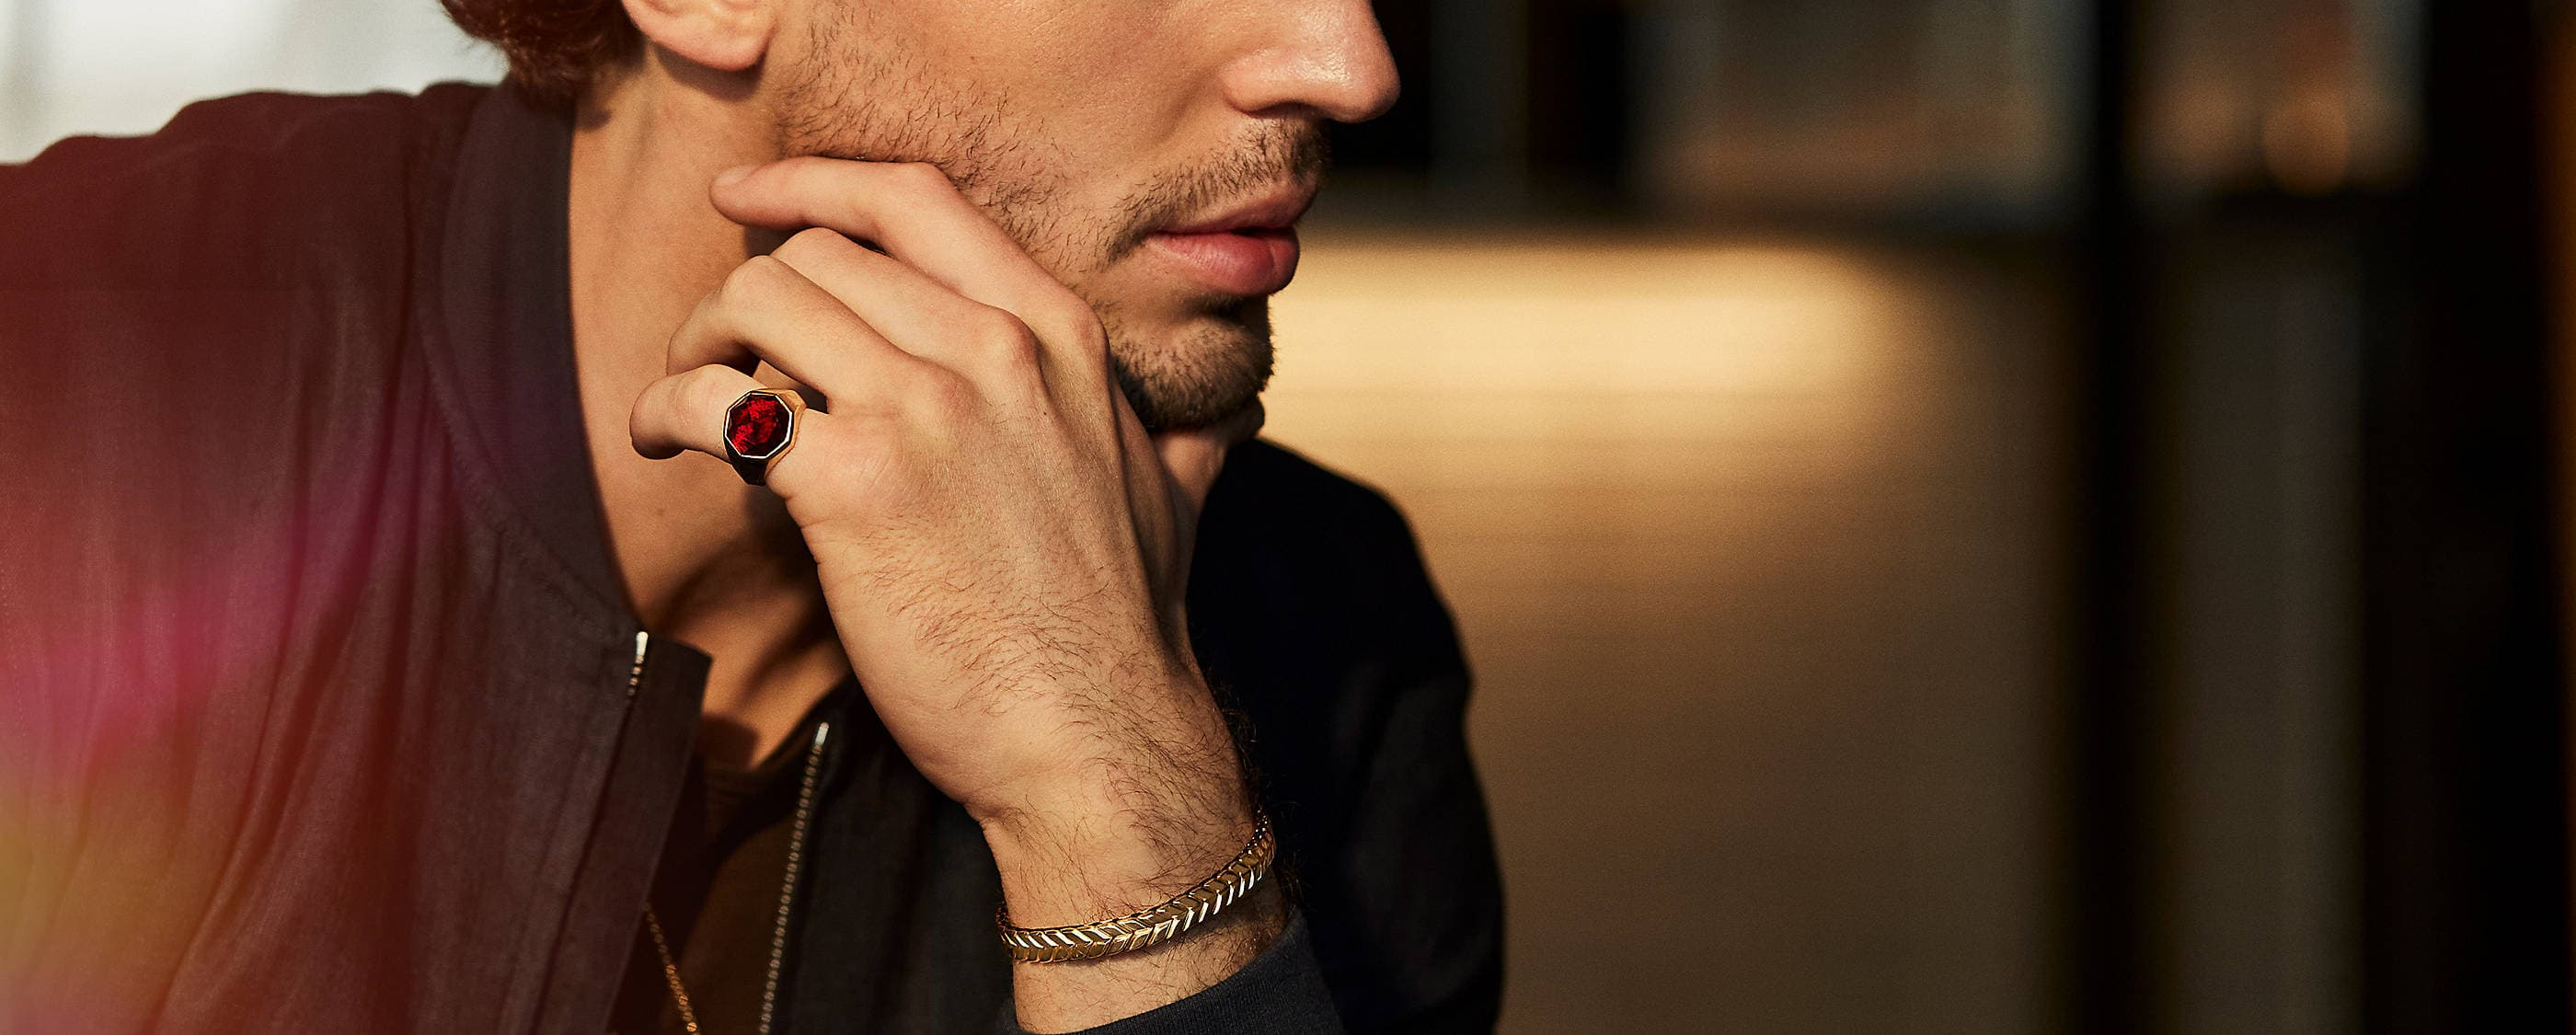 Shop red jewelry for men